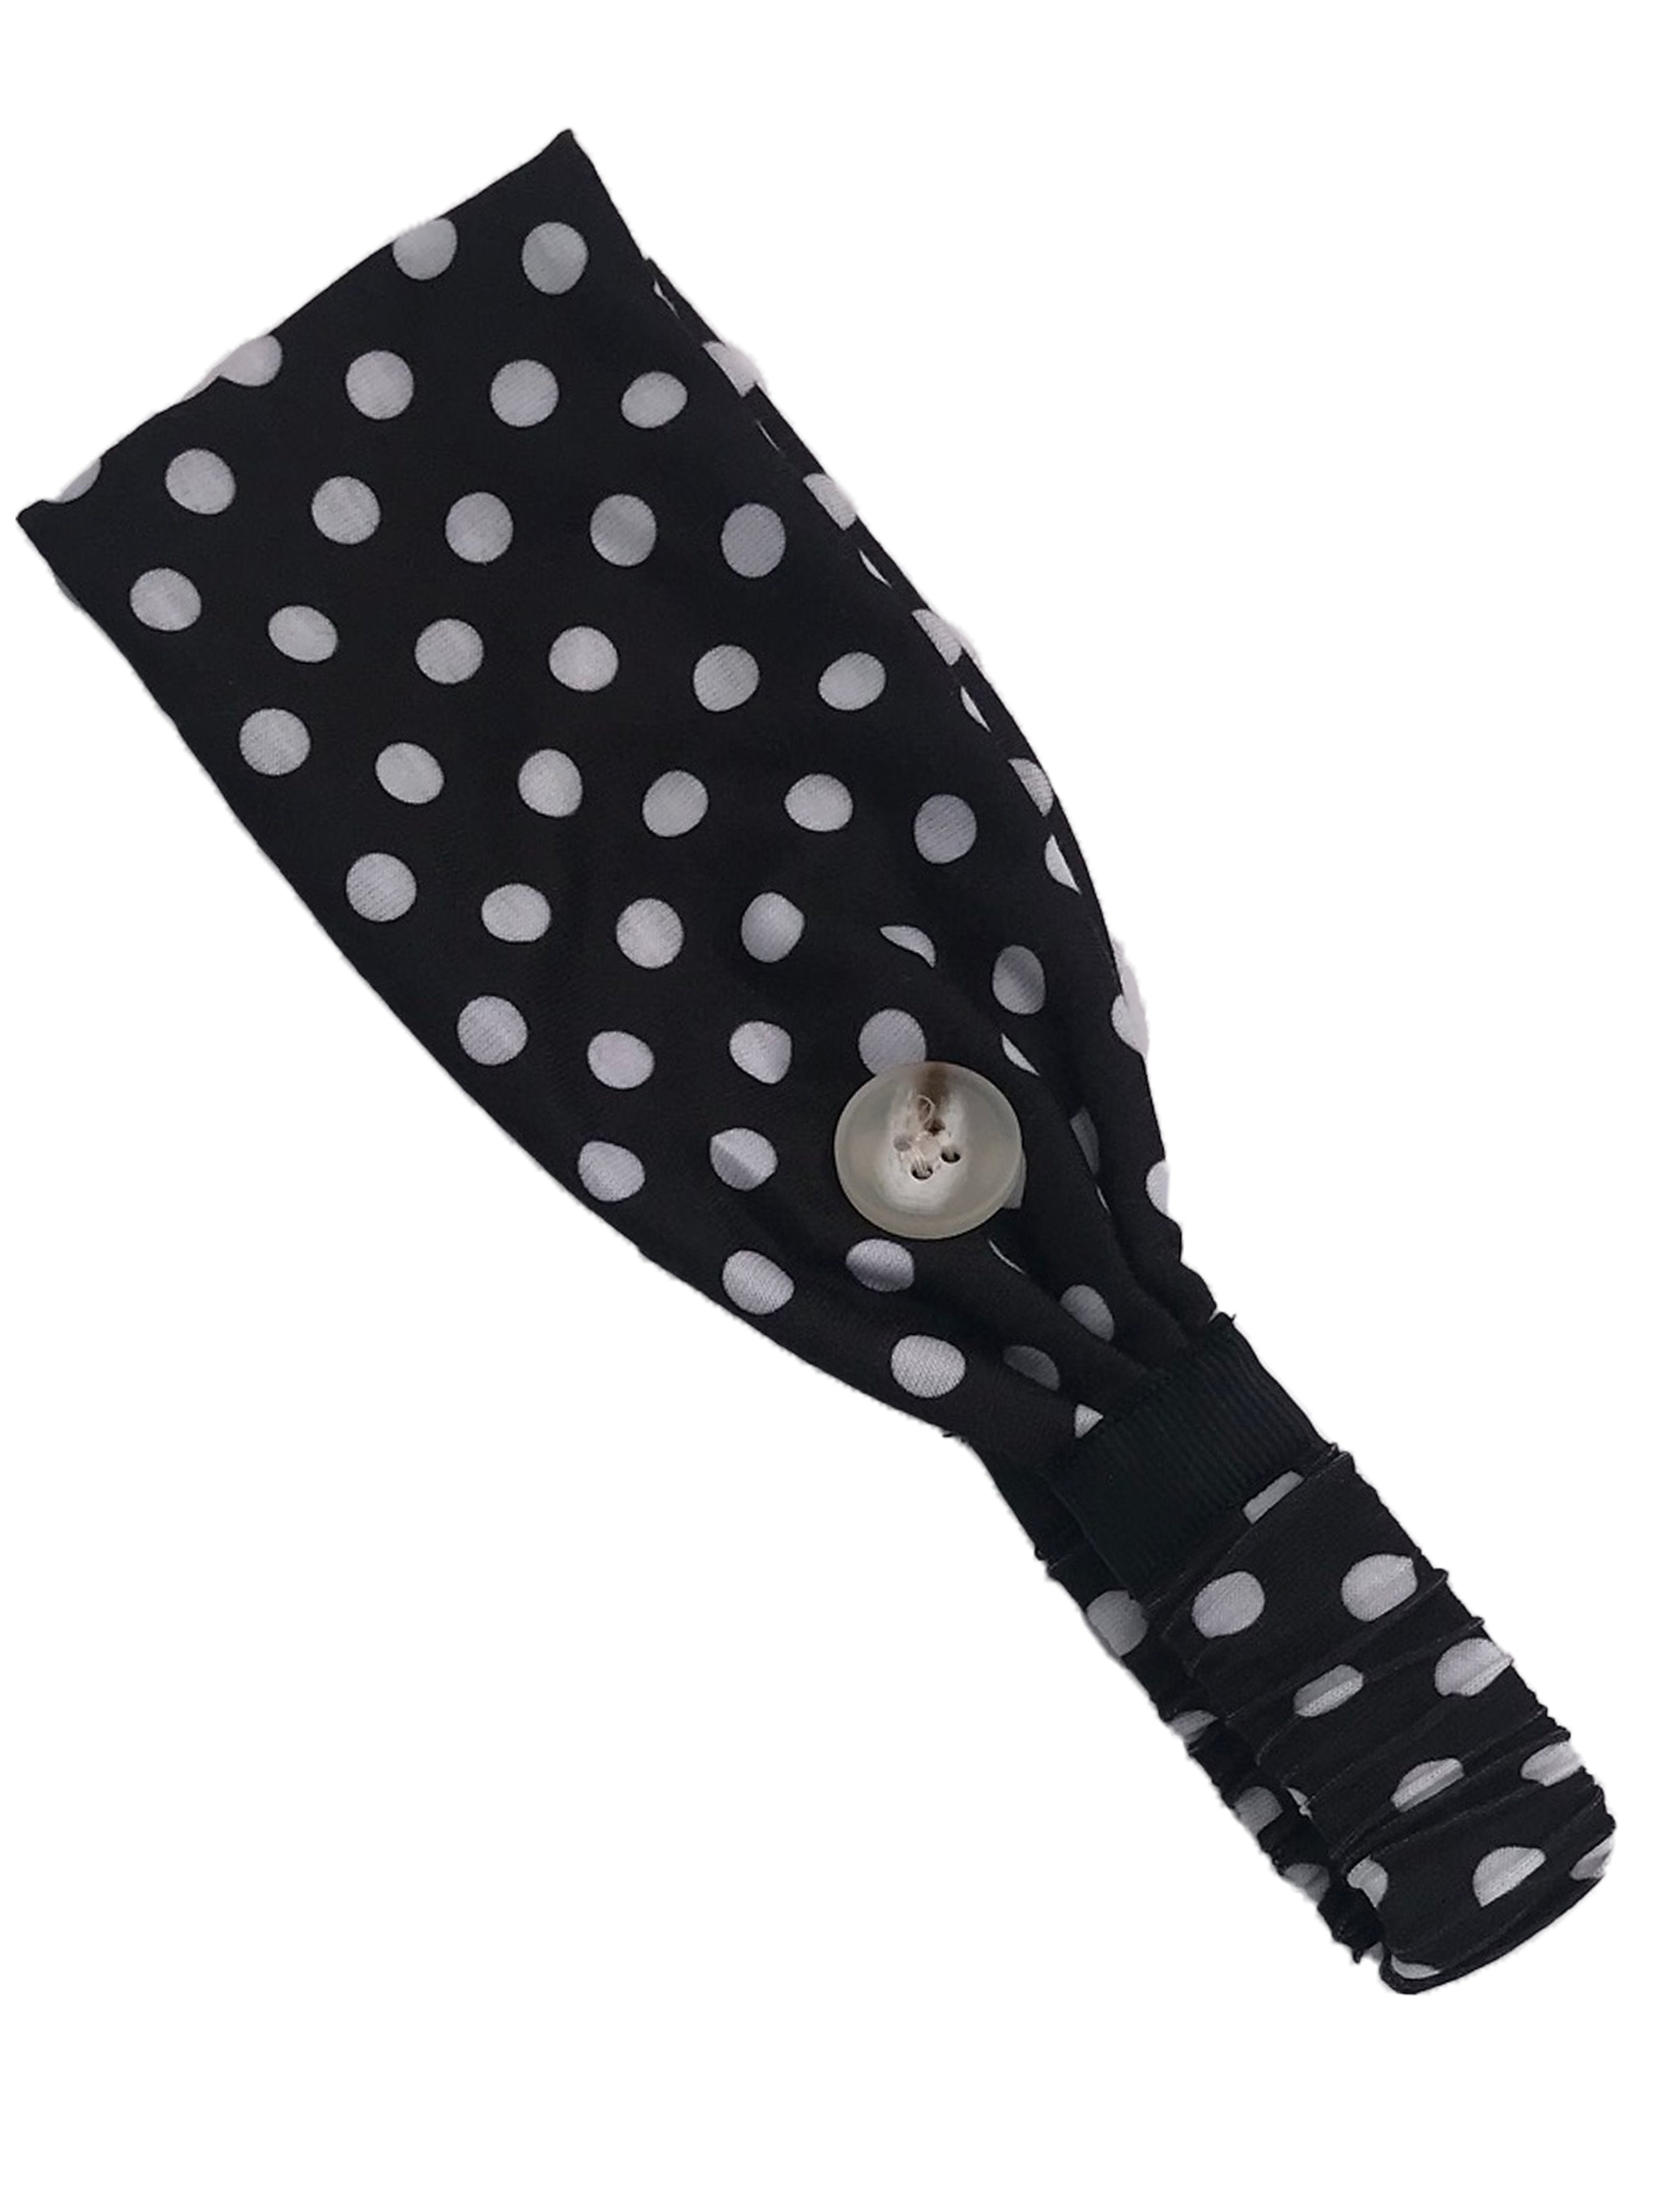 HB-2020 Adult Headband Black White Dot